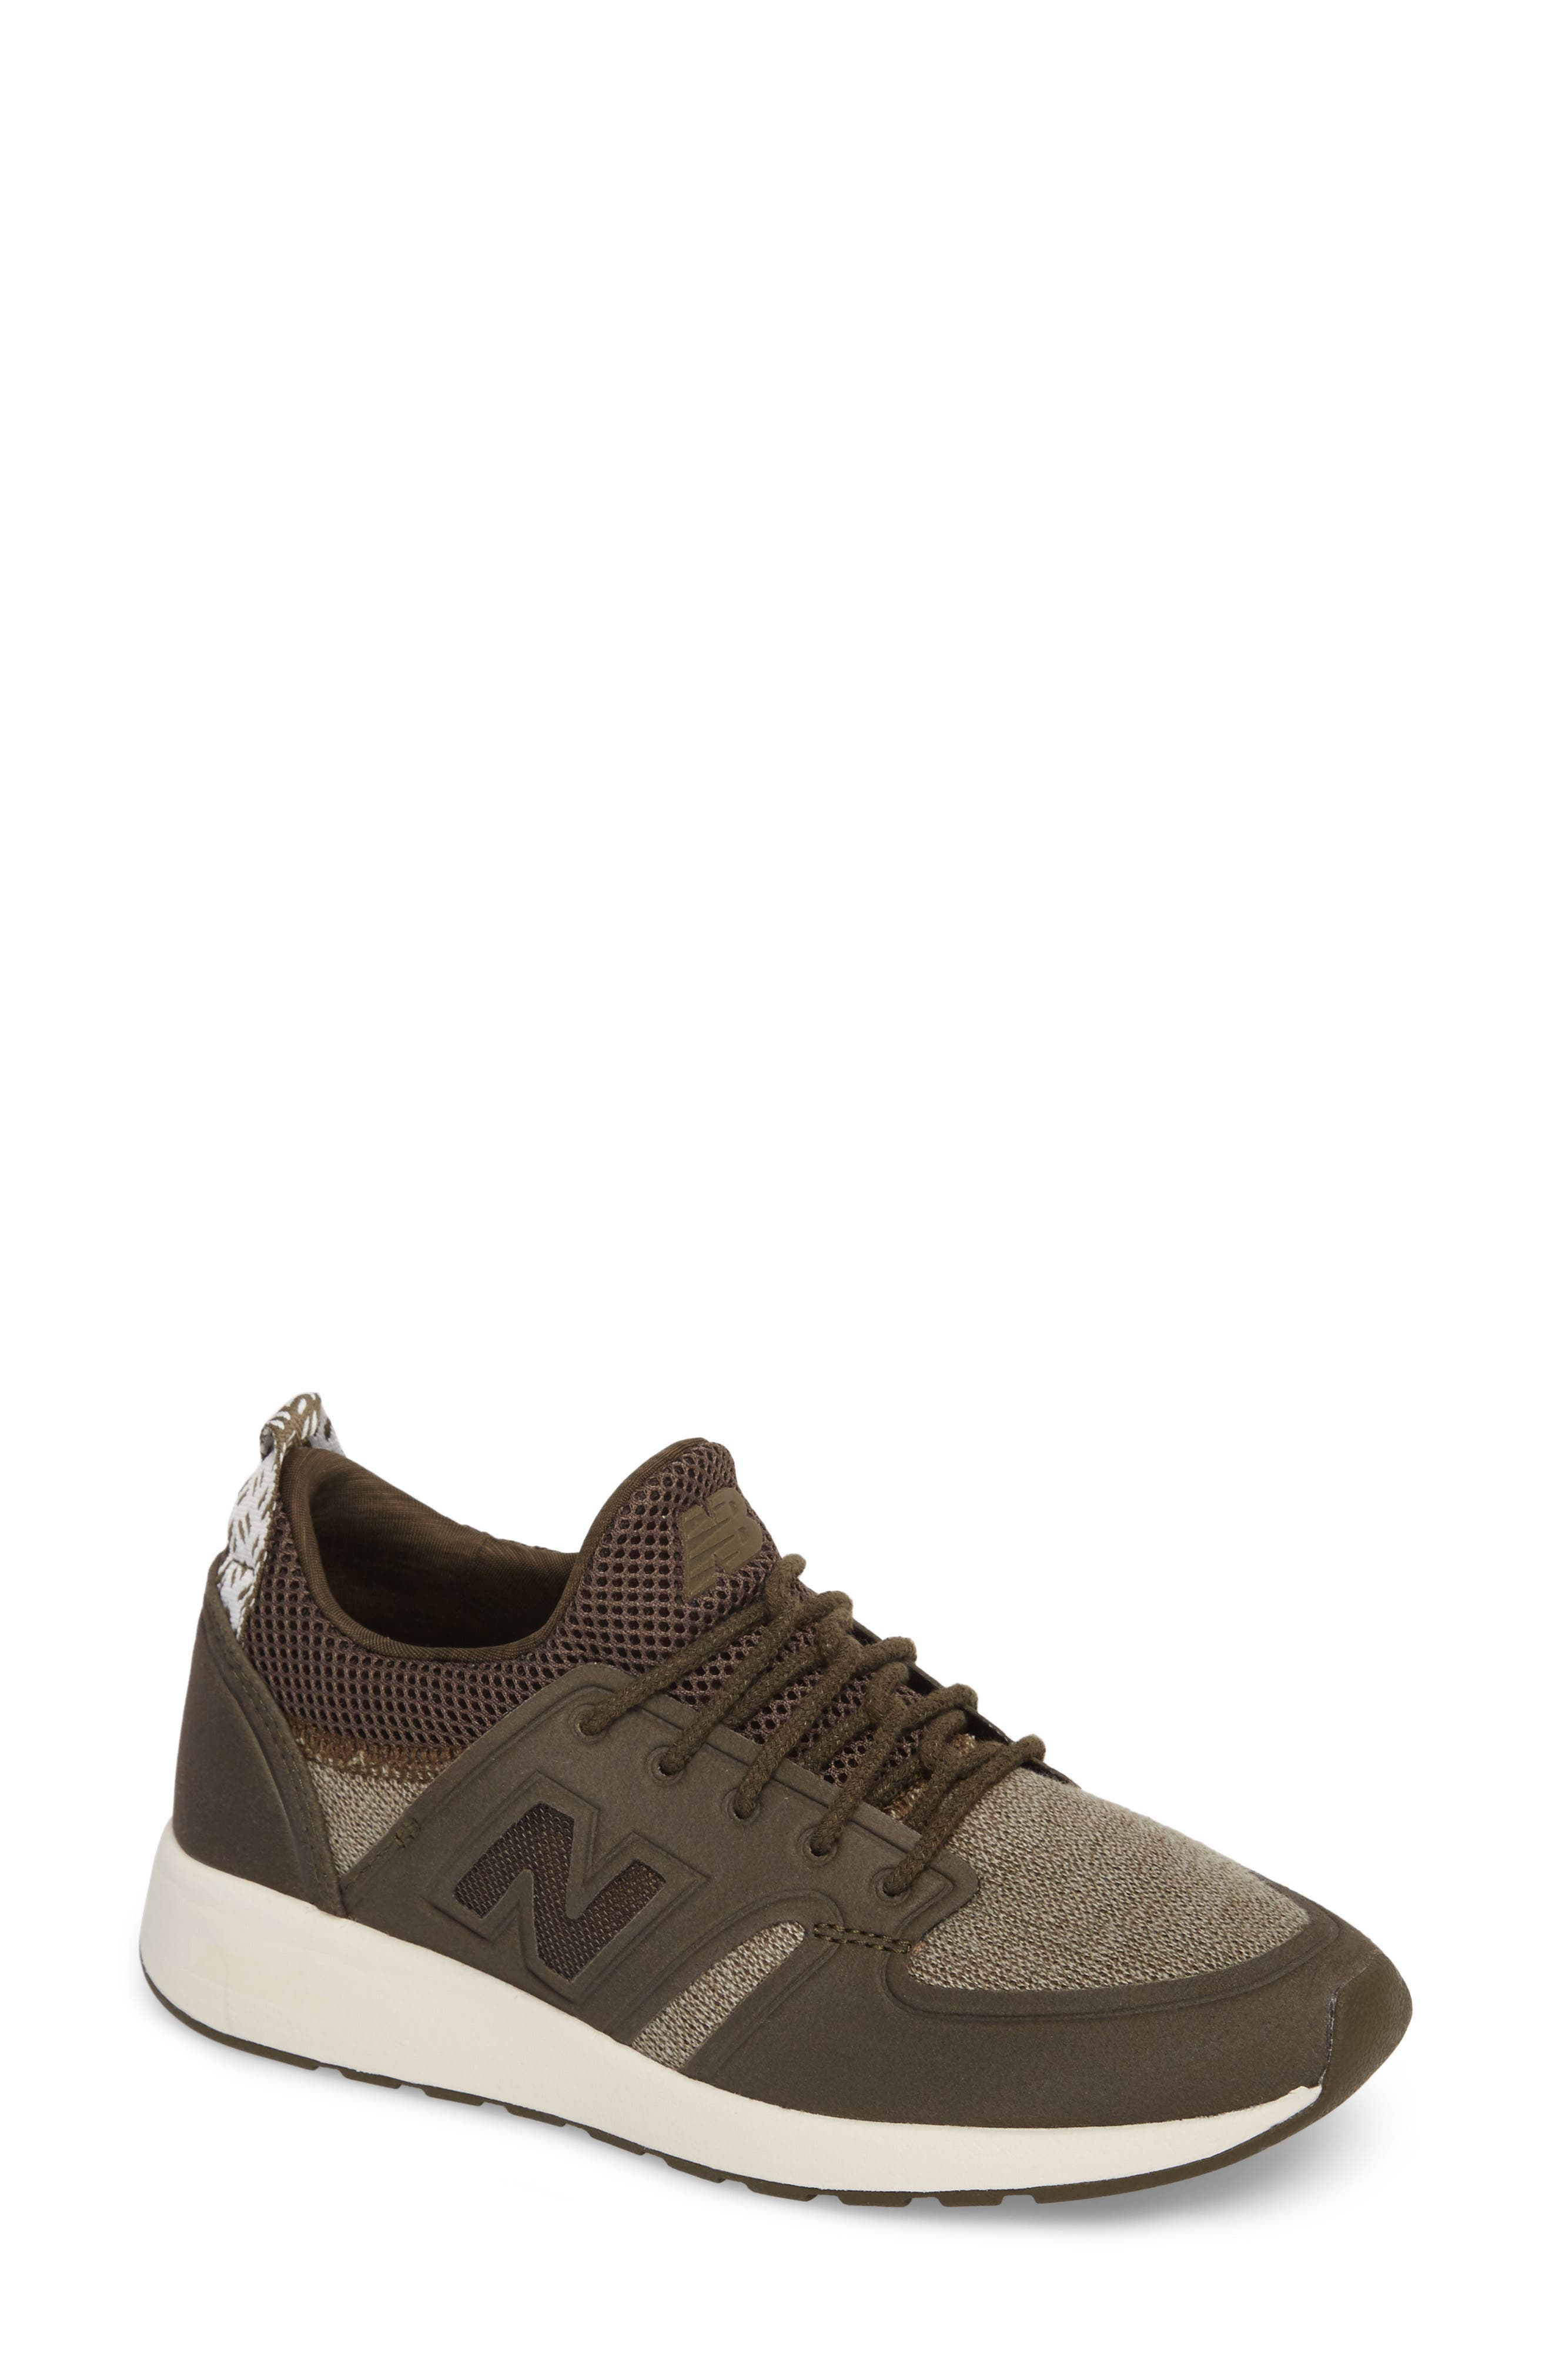 Main Image - New Balance 420 Slip-On Sneaker (Women)